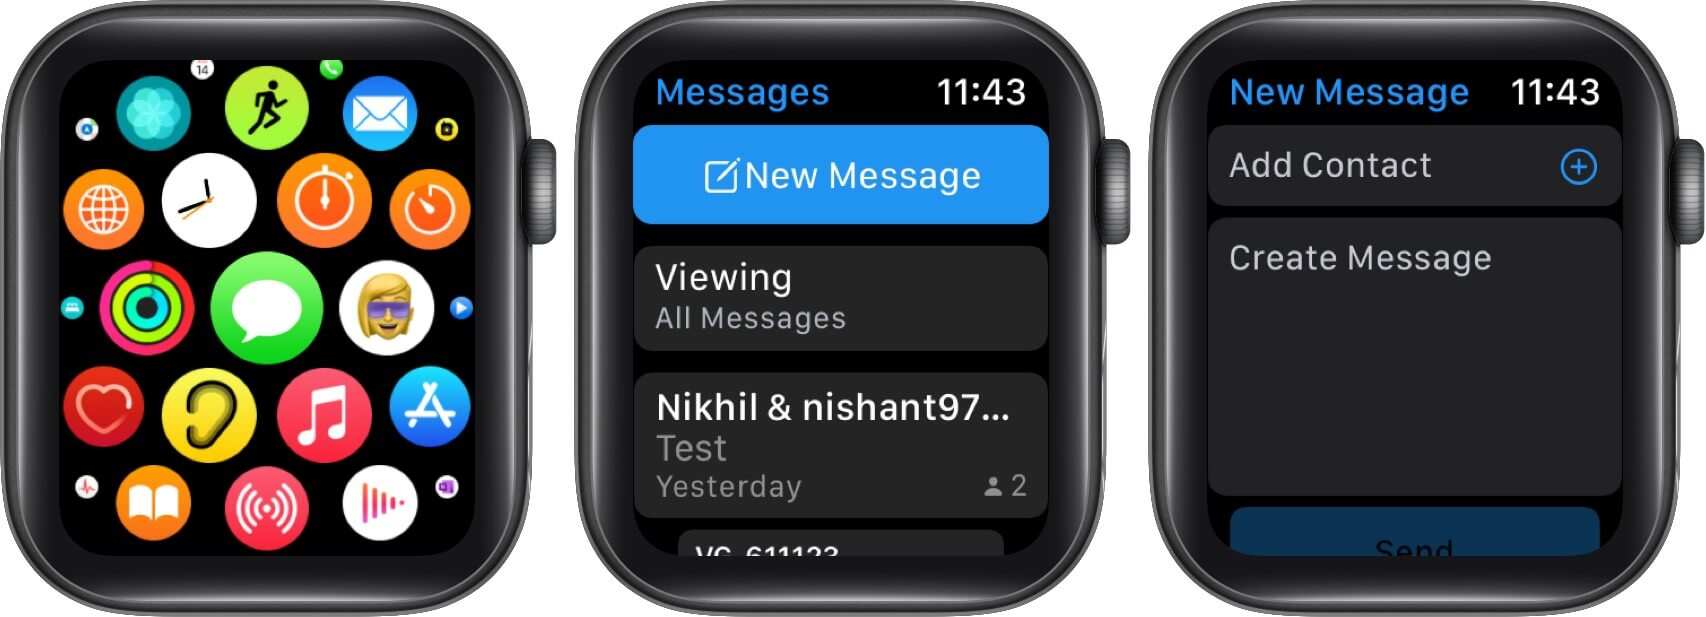 Open Messages App Tap on New Message and Then Tap on Create Message on Apple Watch